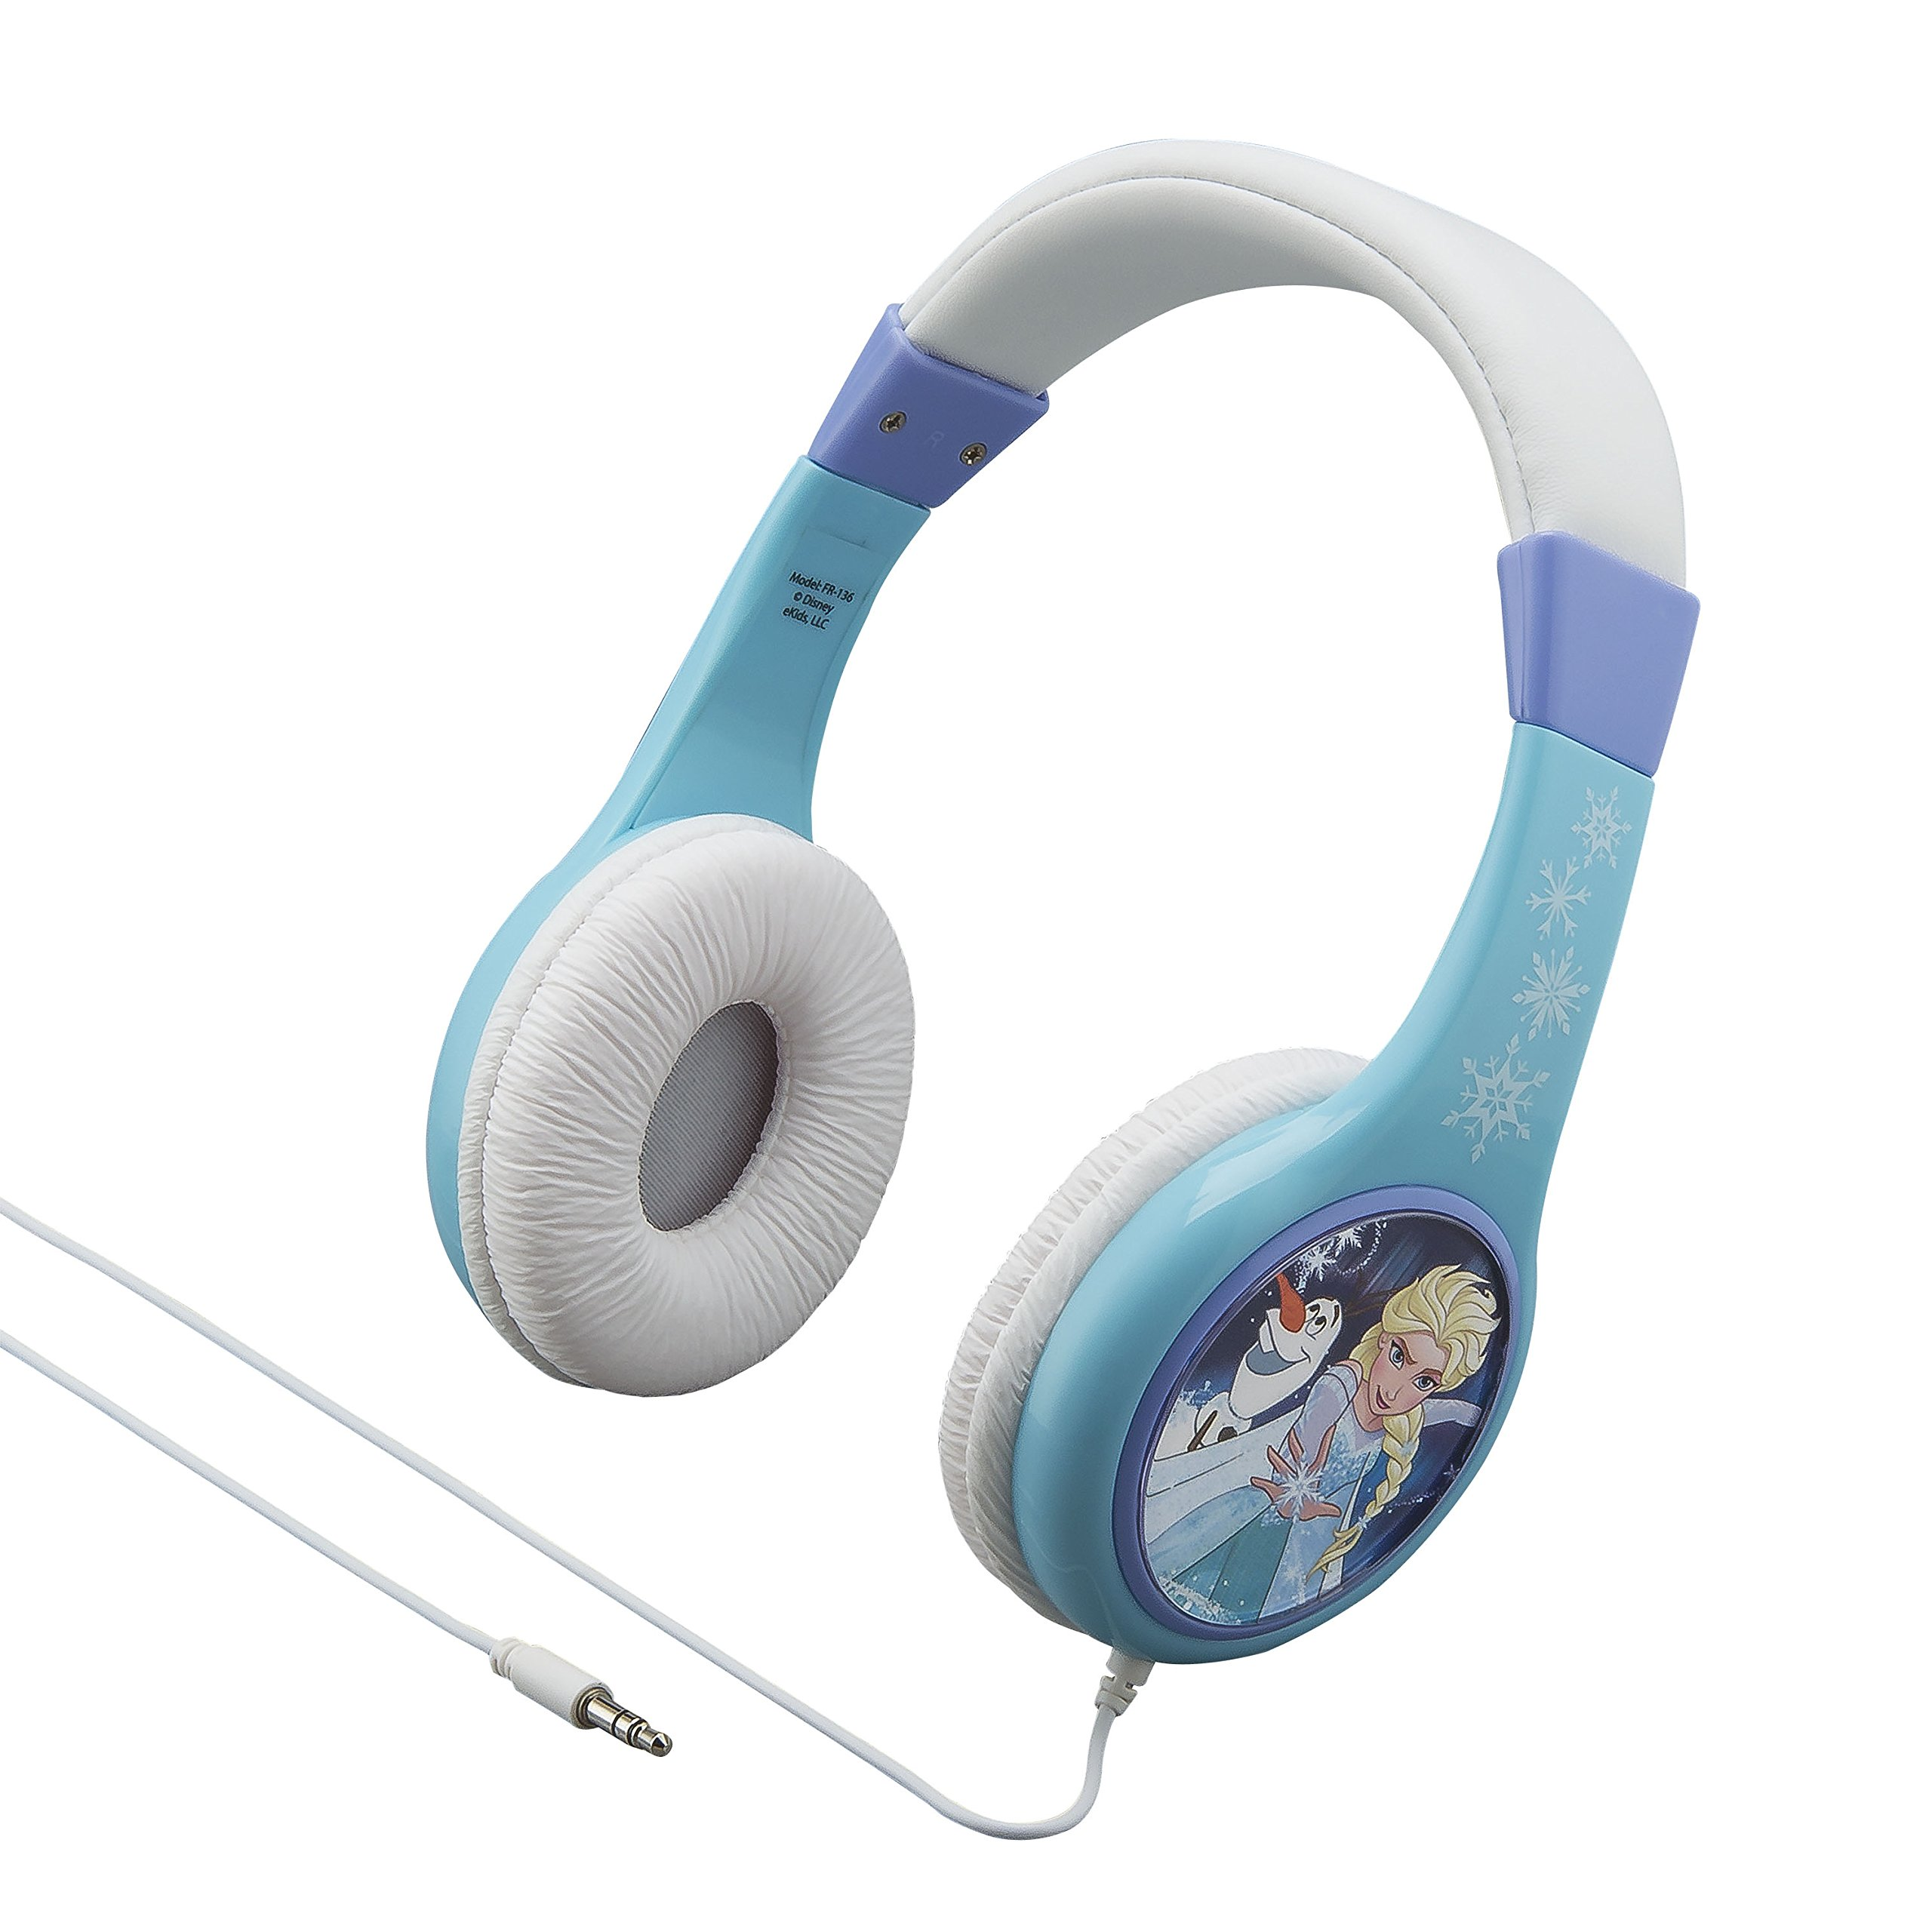 Frozen Kid Friendly Wired Headphones Volume Limited for Safe Listening for Kids